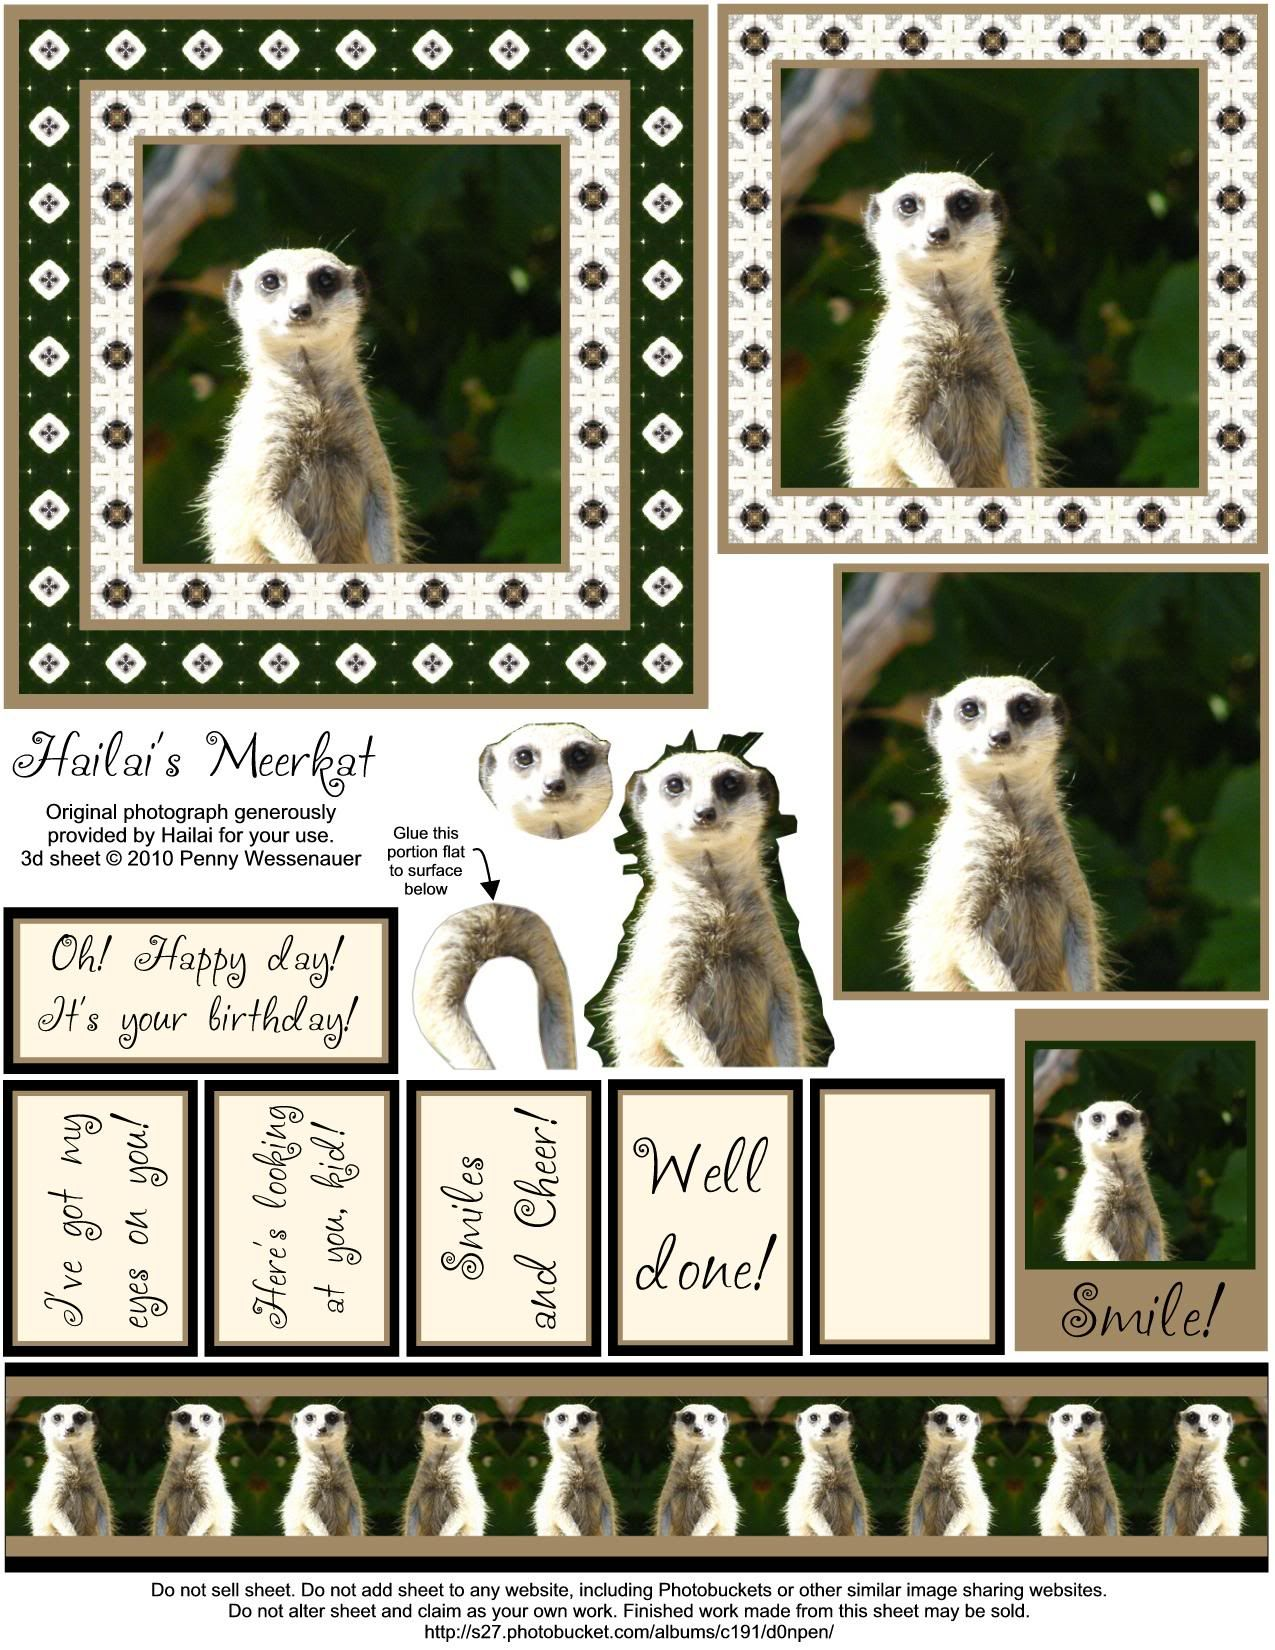 Hailais Meerkat Photo This Photo Was Uploaded By D0npen Find Other